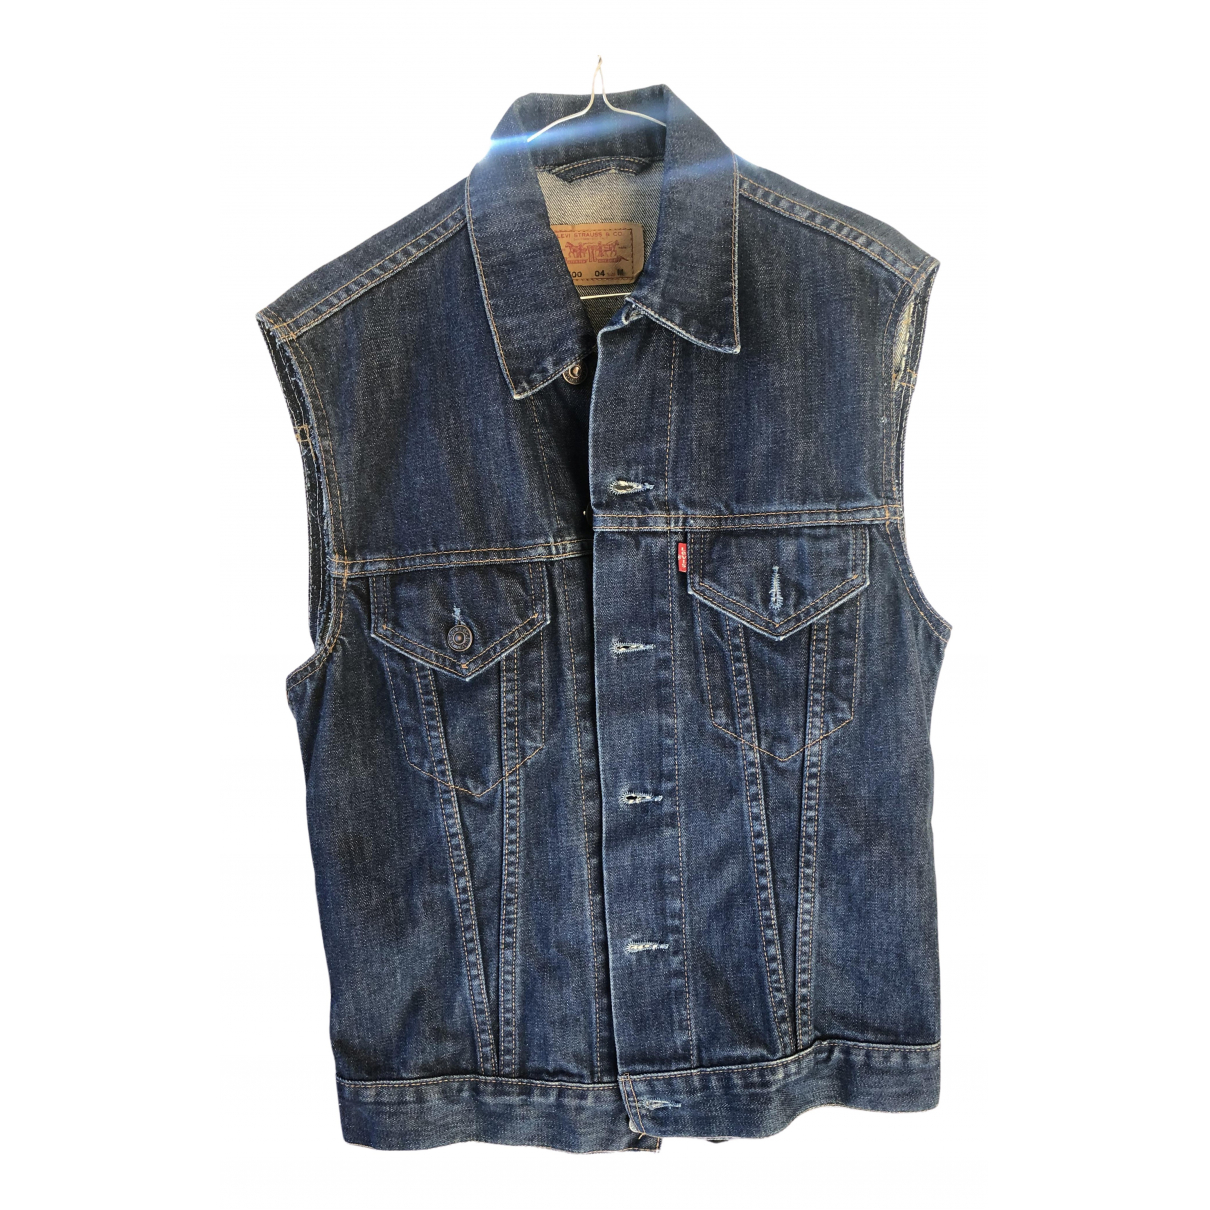 Levis Vintage Clothing \N Jacke in  Blau Denim - Jeans